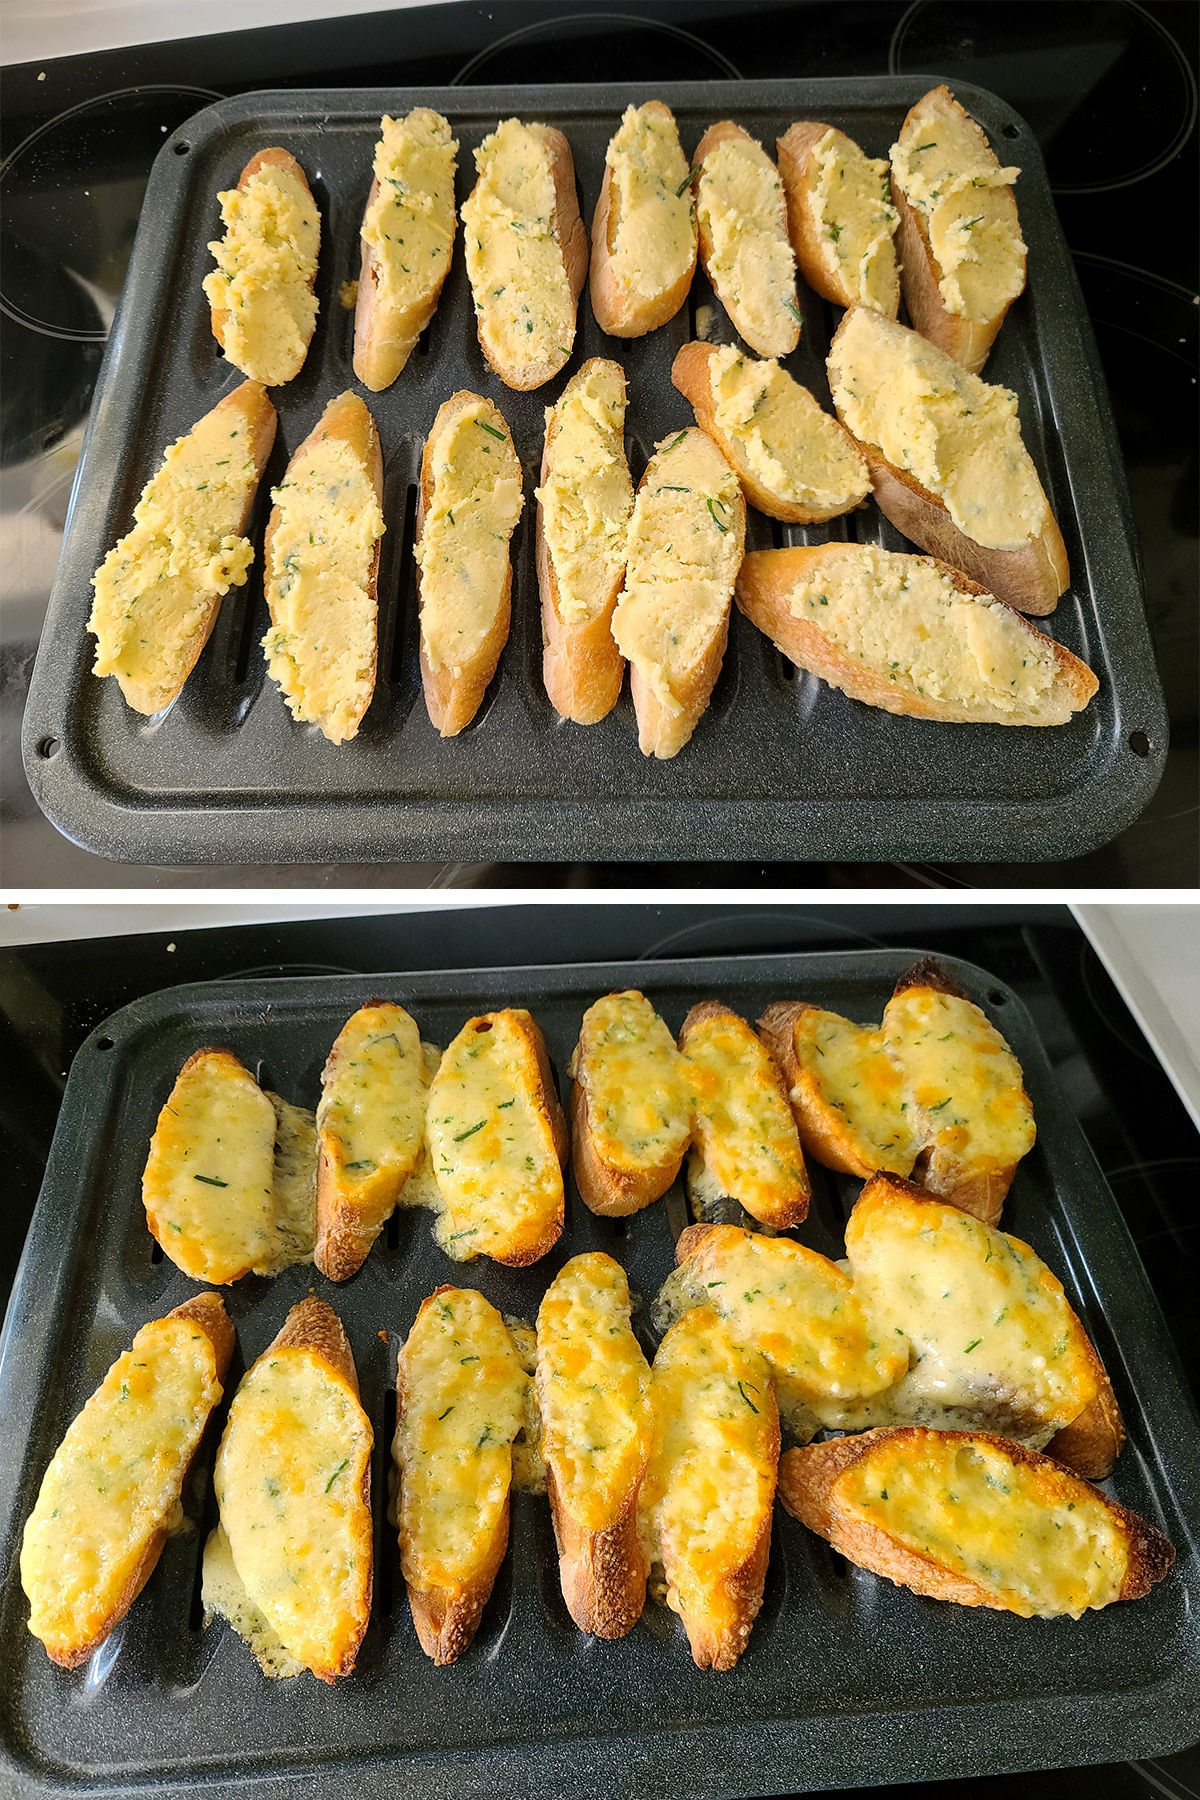 Slices of baguette on a broiling pan, before and after being broiled.